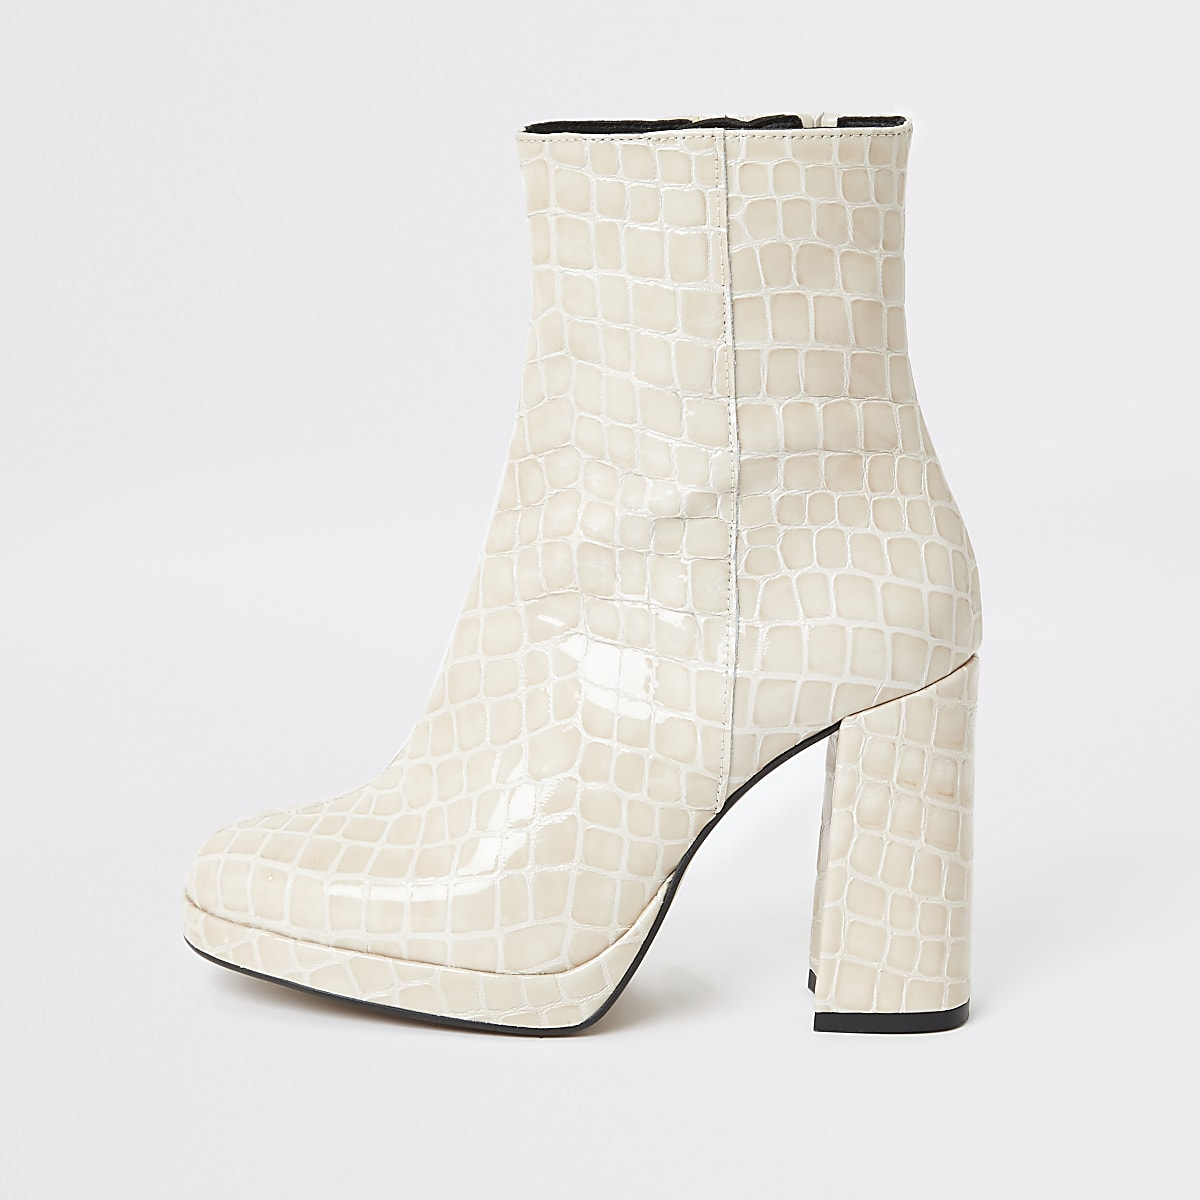 Beige leather croc platform boots